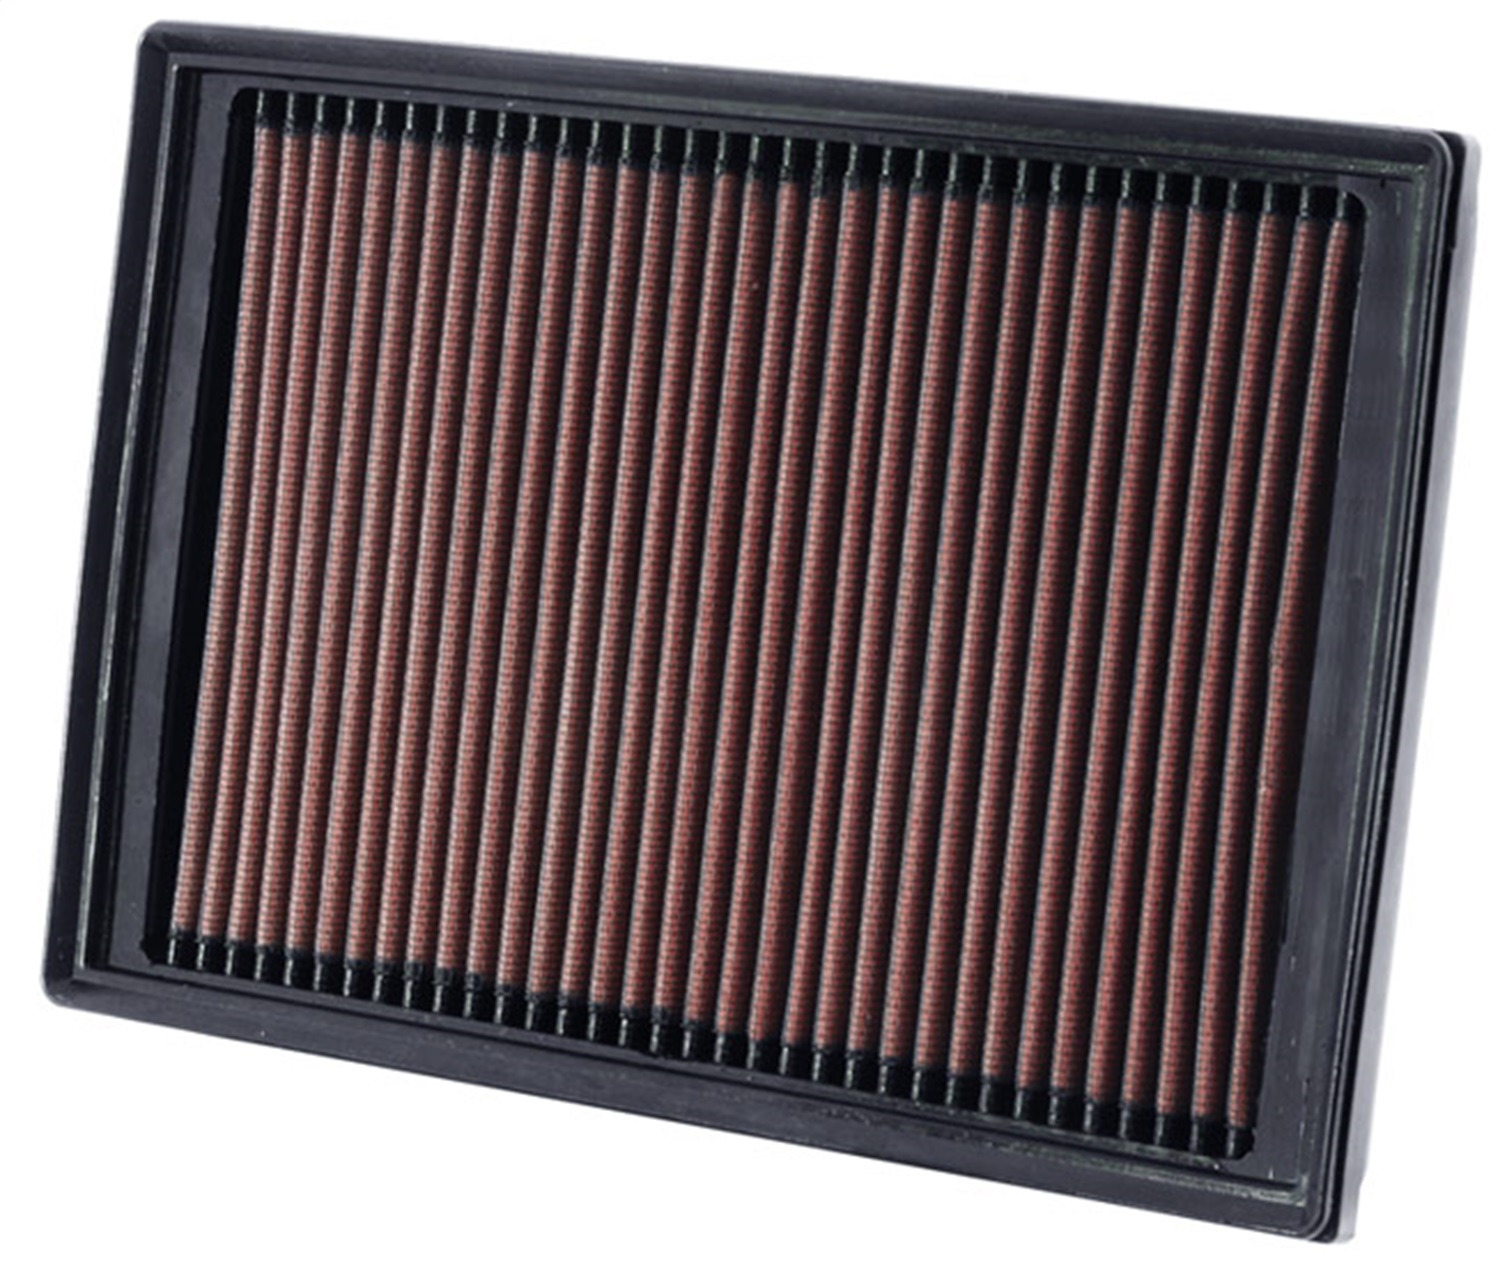 K&N Filters 33-2414 Air Filter Fits 08-12 LR2 33-2414